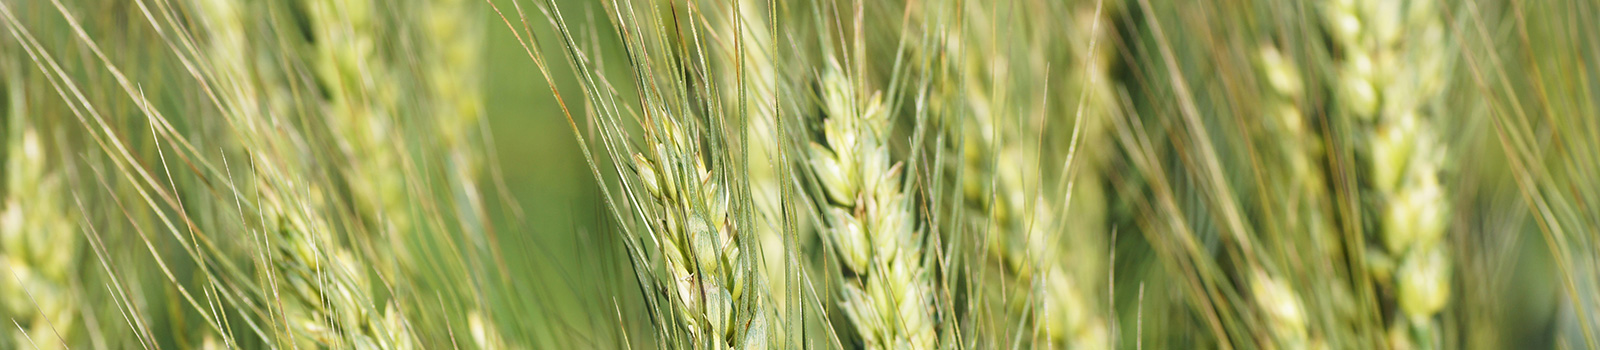 Green-wheat